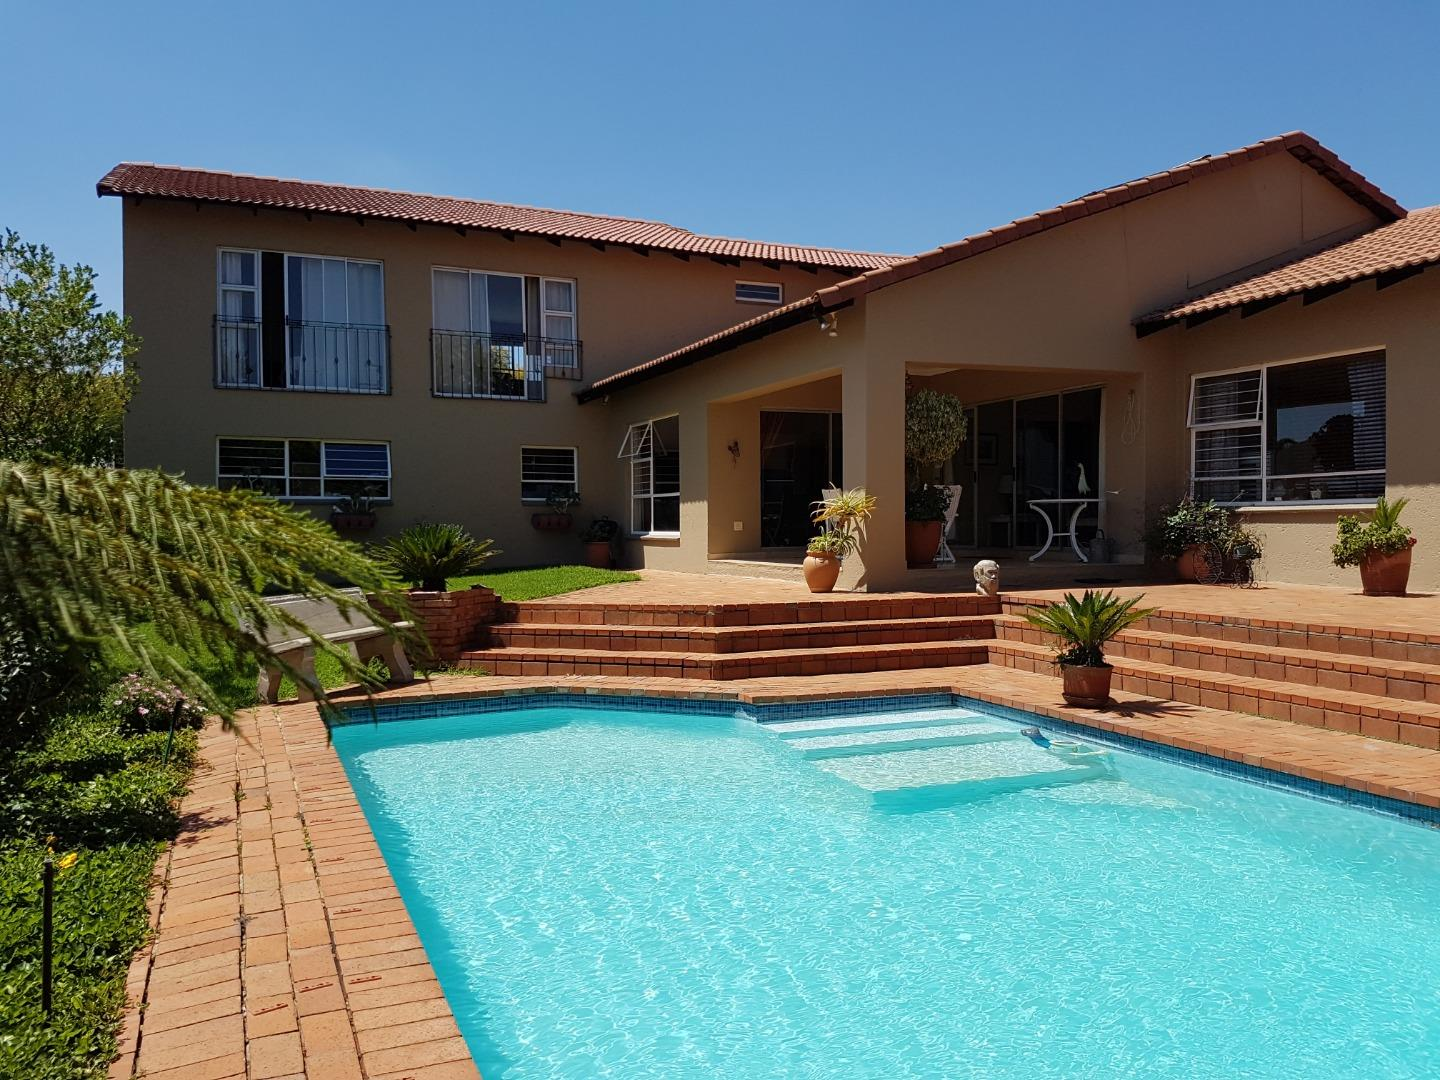 3 Bedroom House for Sale in Hurlingham Manor, Sandton - Gauteng